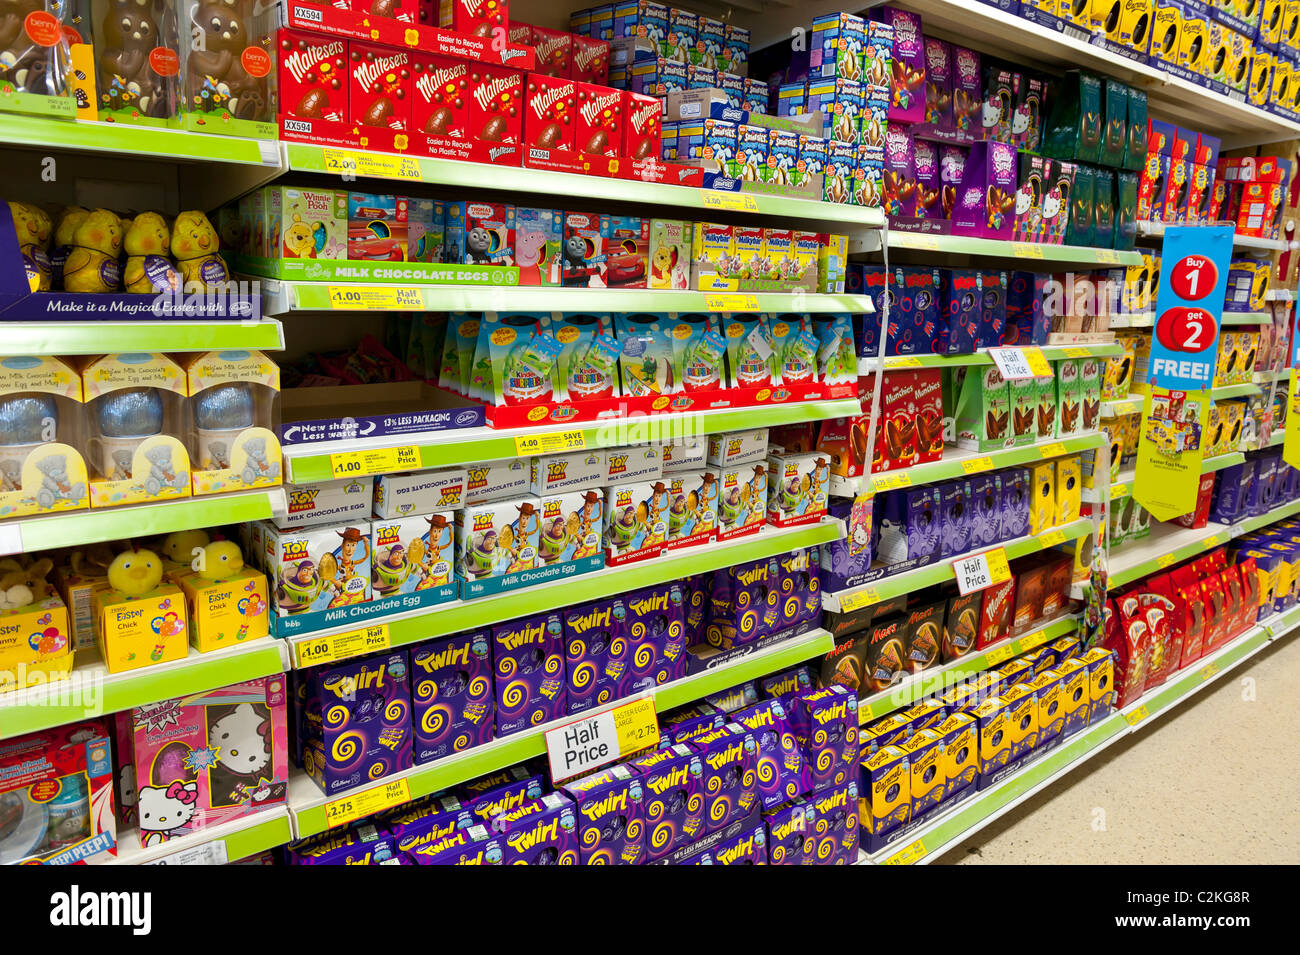 Easter eggs supermarket stock photos easter eggs supermarket a selection of chocolate easter eggs in a tesco supermarket in the uk stock image negle Gallery